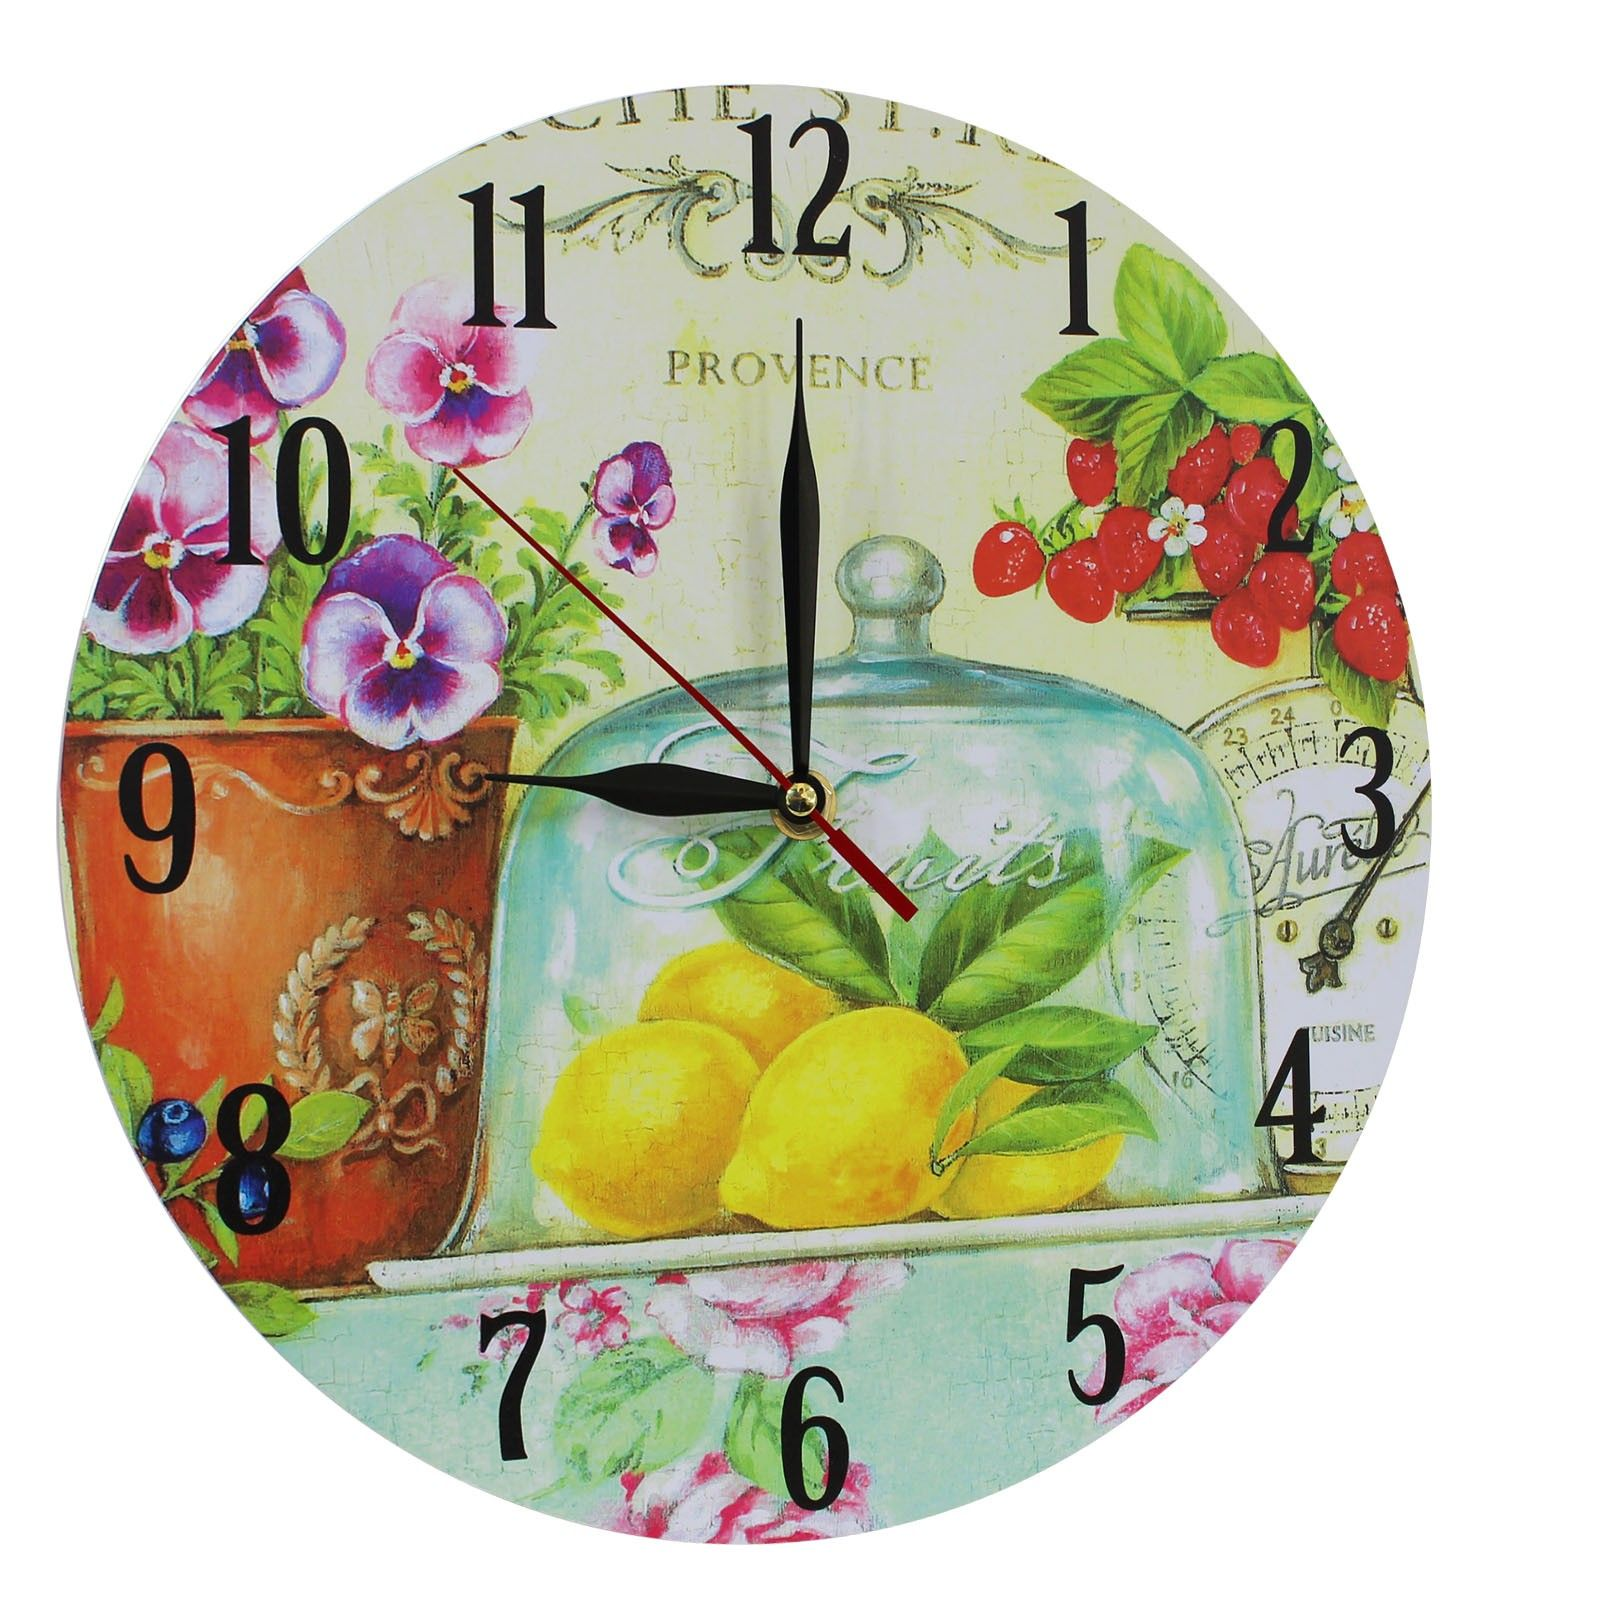 This listing is for one Home Decoration Vintage Style MDF Lemons, Strawberries and Flowers Scene Vintage Style Wall Clock 28 cm. Price £12.99